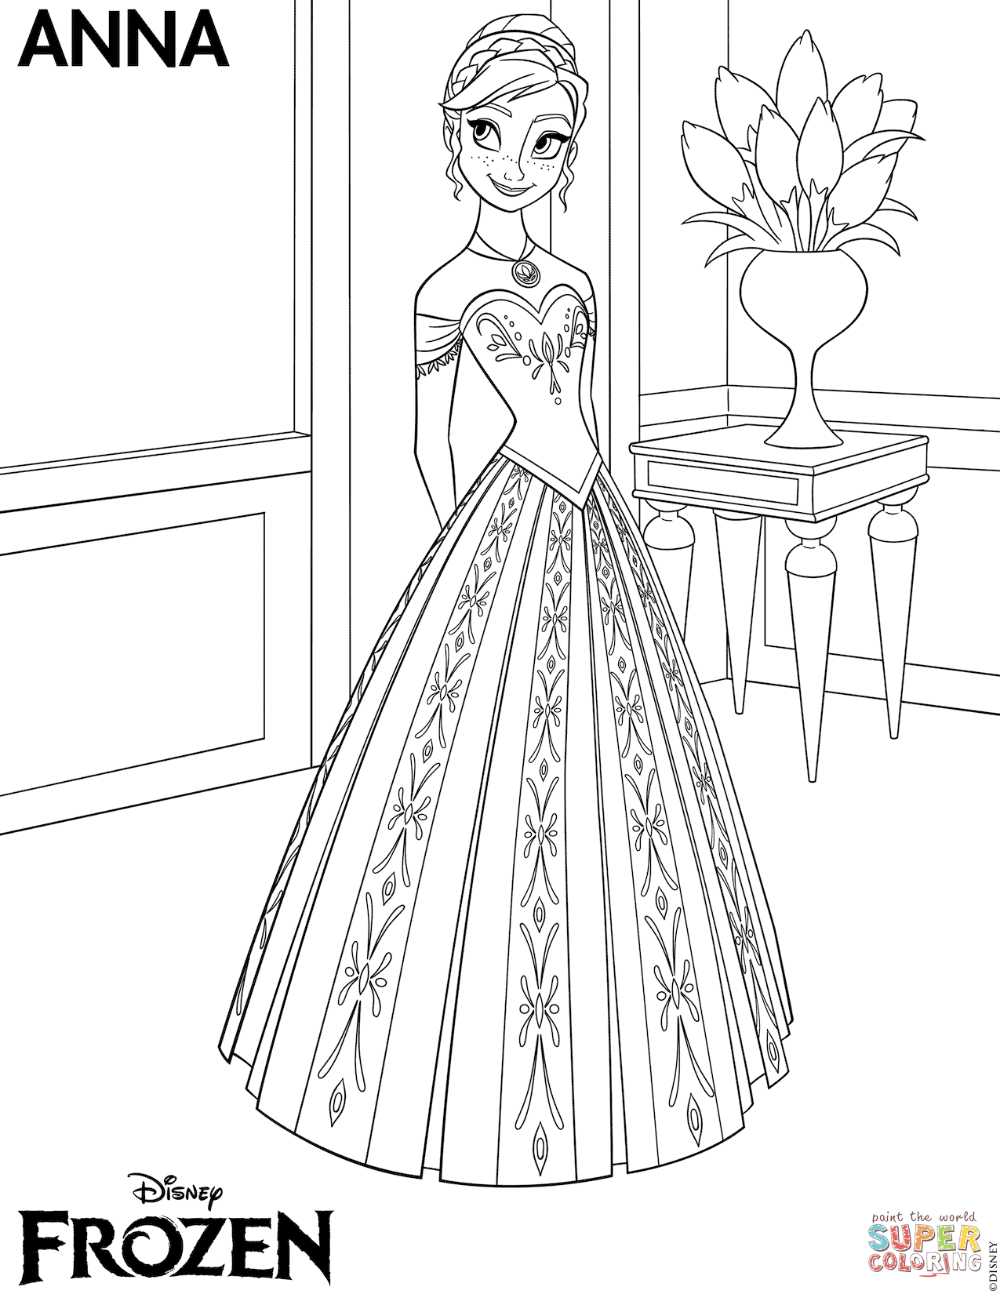 Frozen Anna Coloring Page Free Printable Coloring Pages In 2020 Frozen Coloring Pages Elsa Coloring Pages Frozen Coloring Sheets